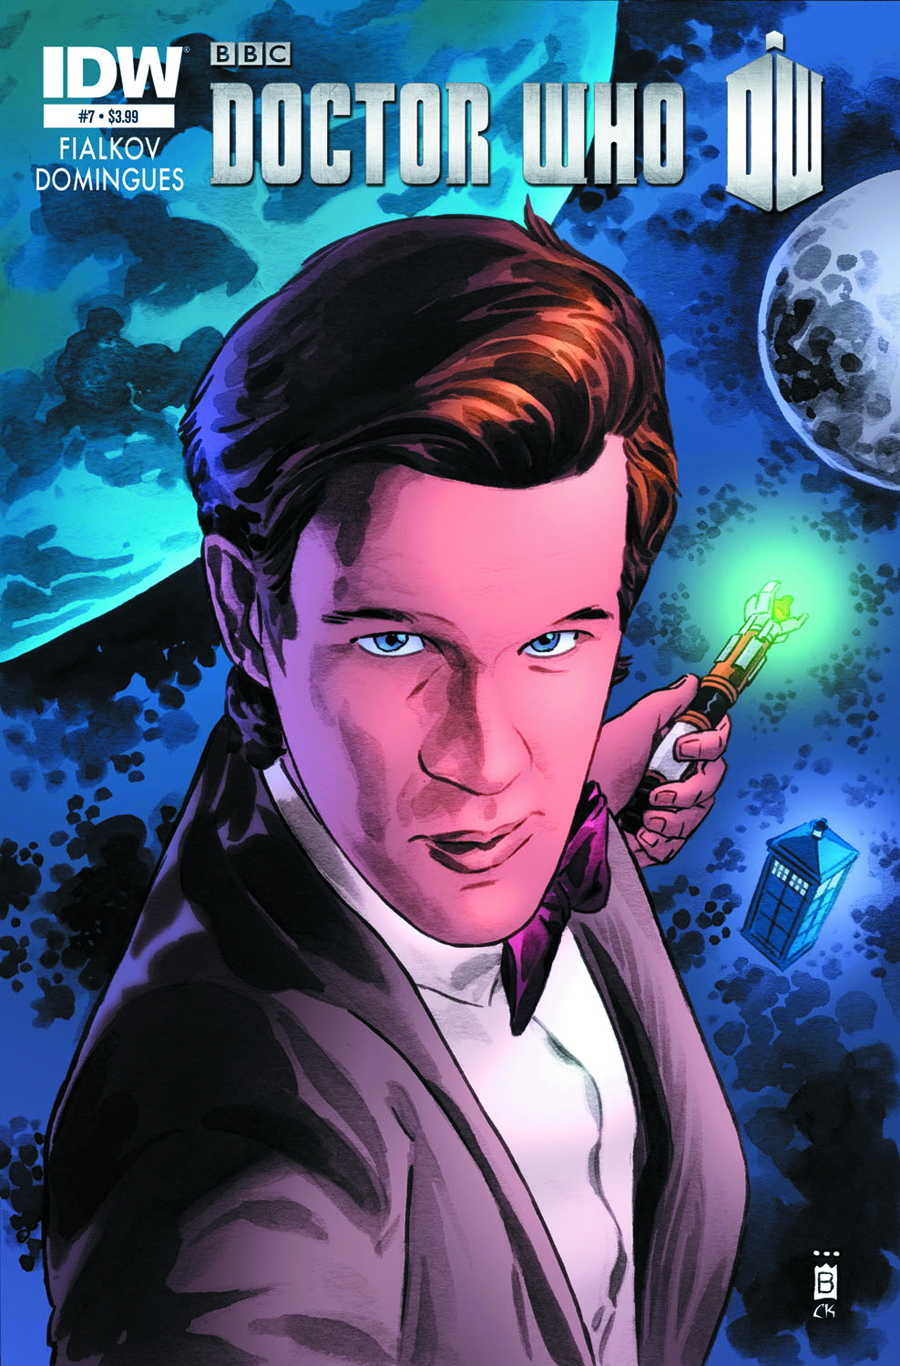 DOCTOR WHO VOL 3 #7